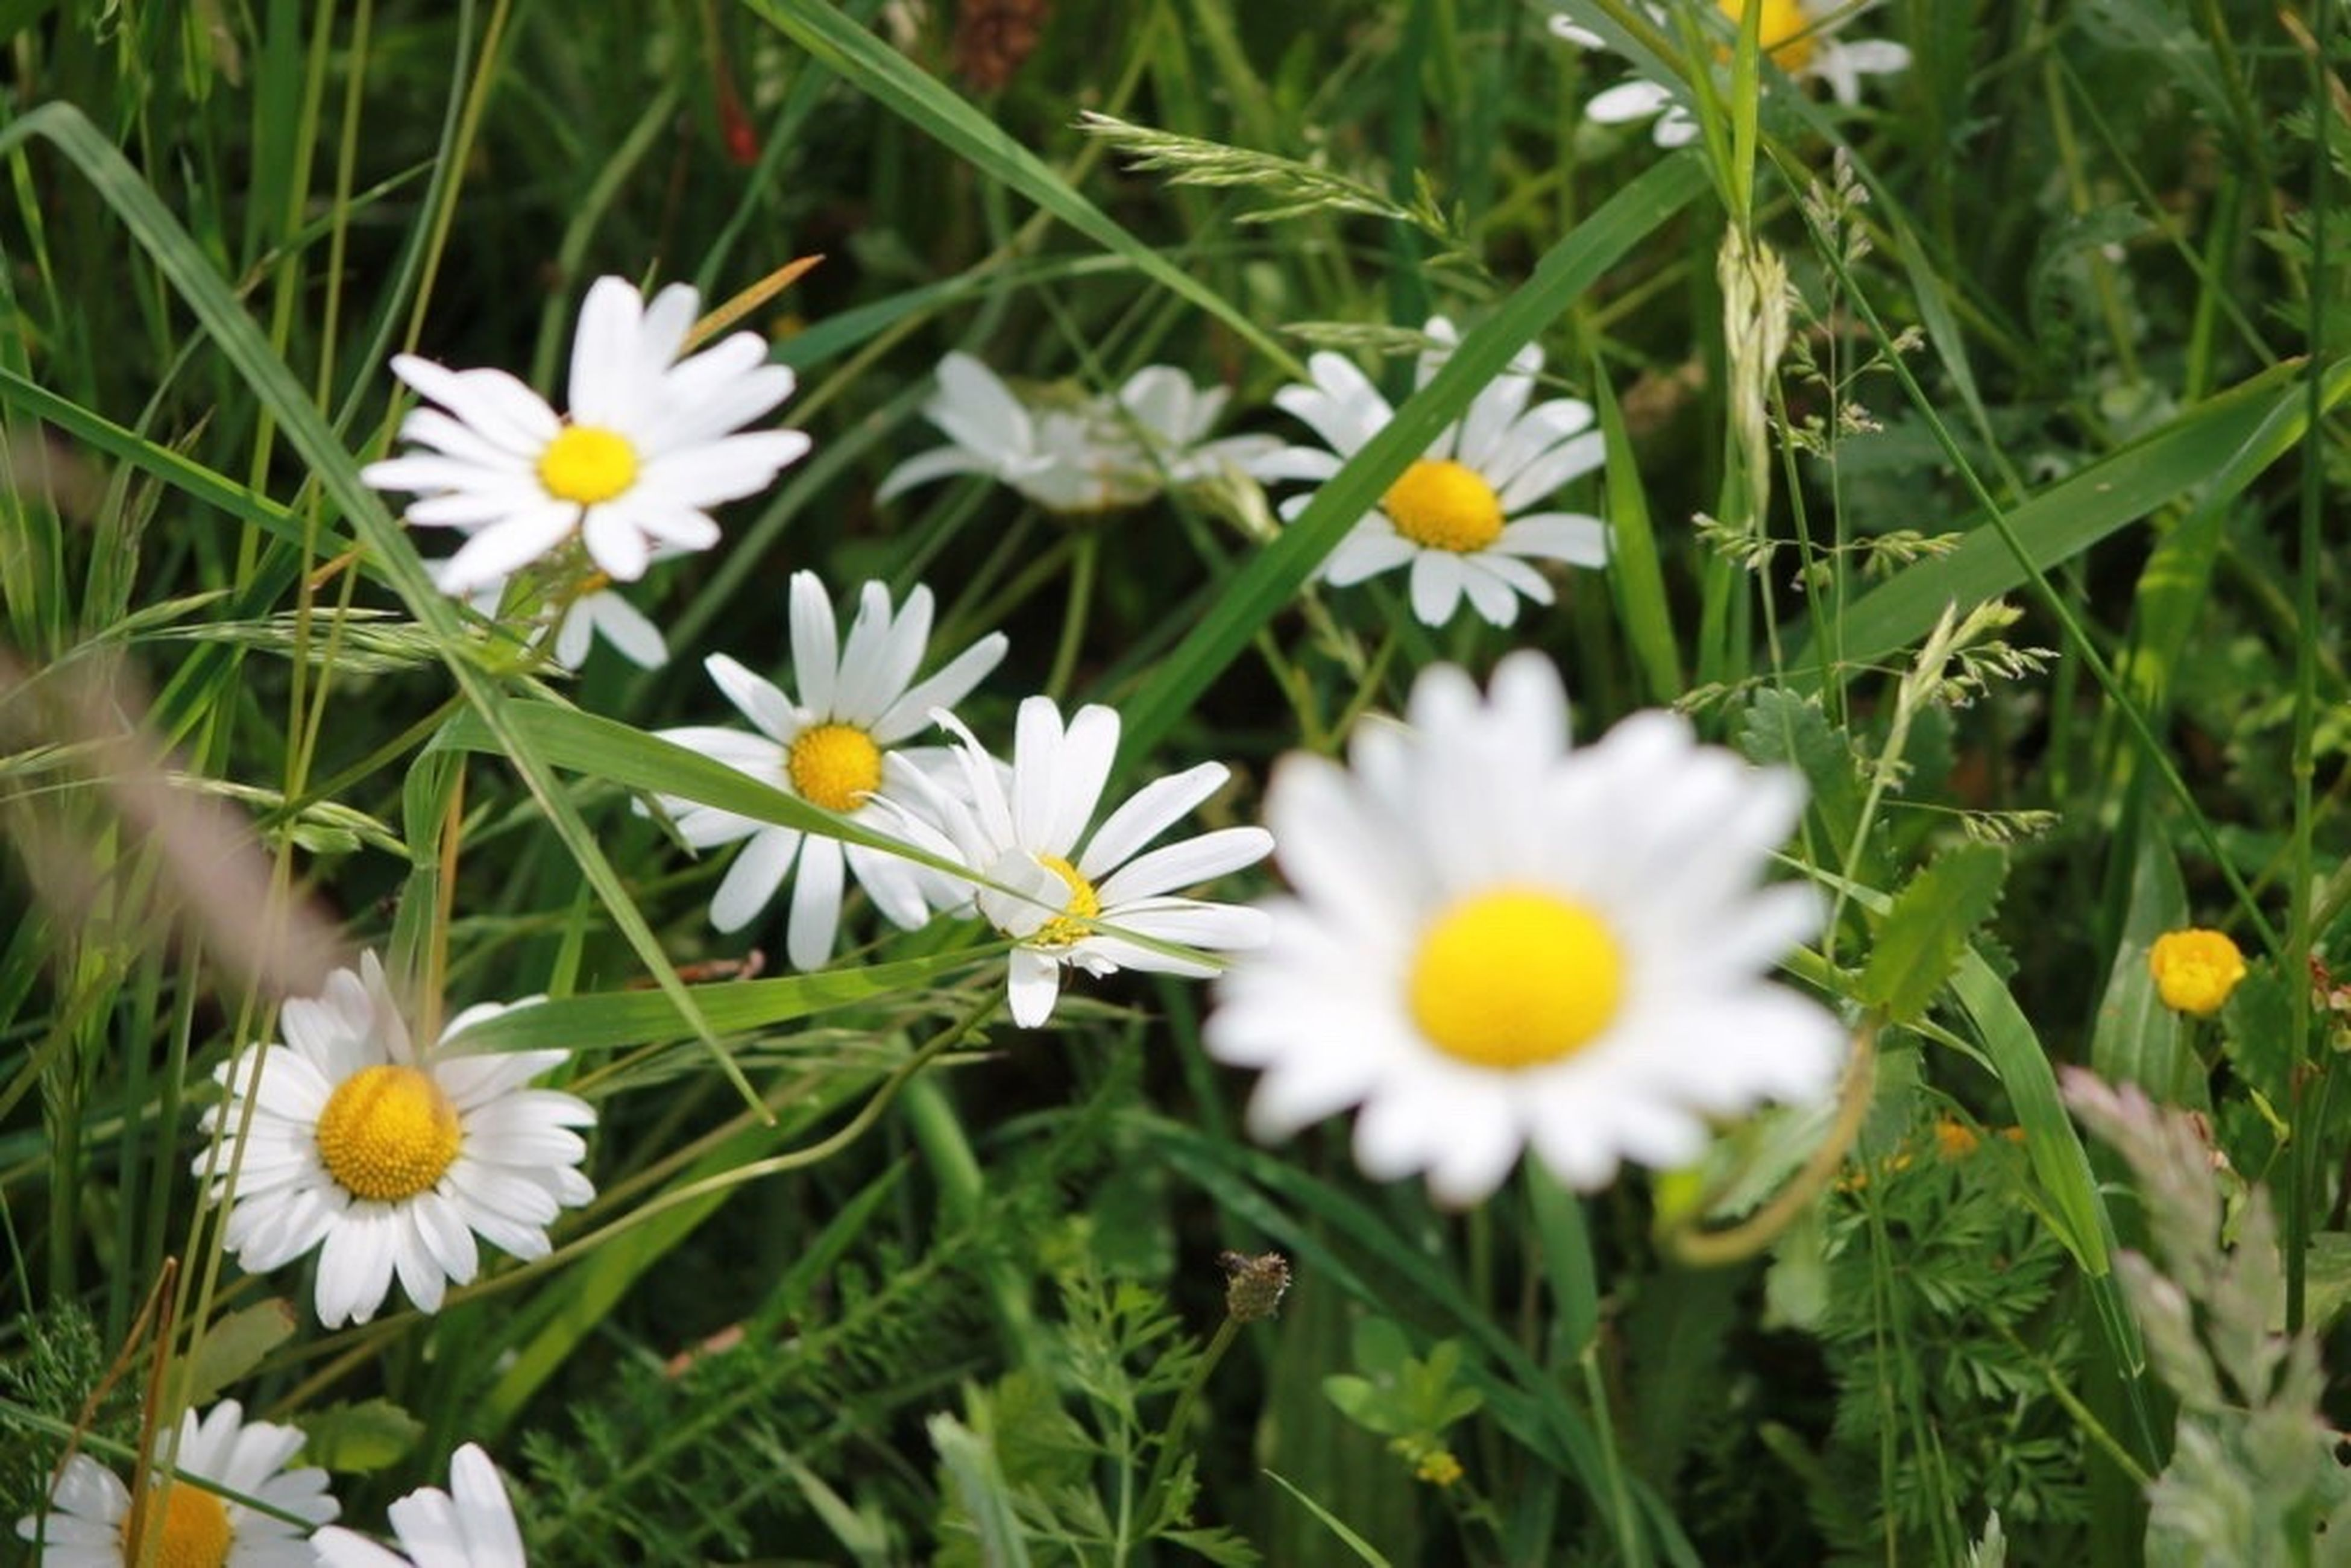 flower, freshness, fragility, growth, daisy, white color, petal, beauty in nature, flower head, nature, white, yellow, plant, stem, close-up, selective focus, growing, daisies, field, blossom, day, springtime, in bloom, pollen, blooming, outdoors, green color, wildflower, no people, flowering plant, uncultivated